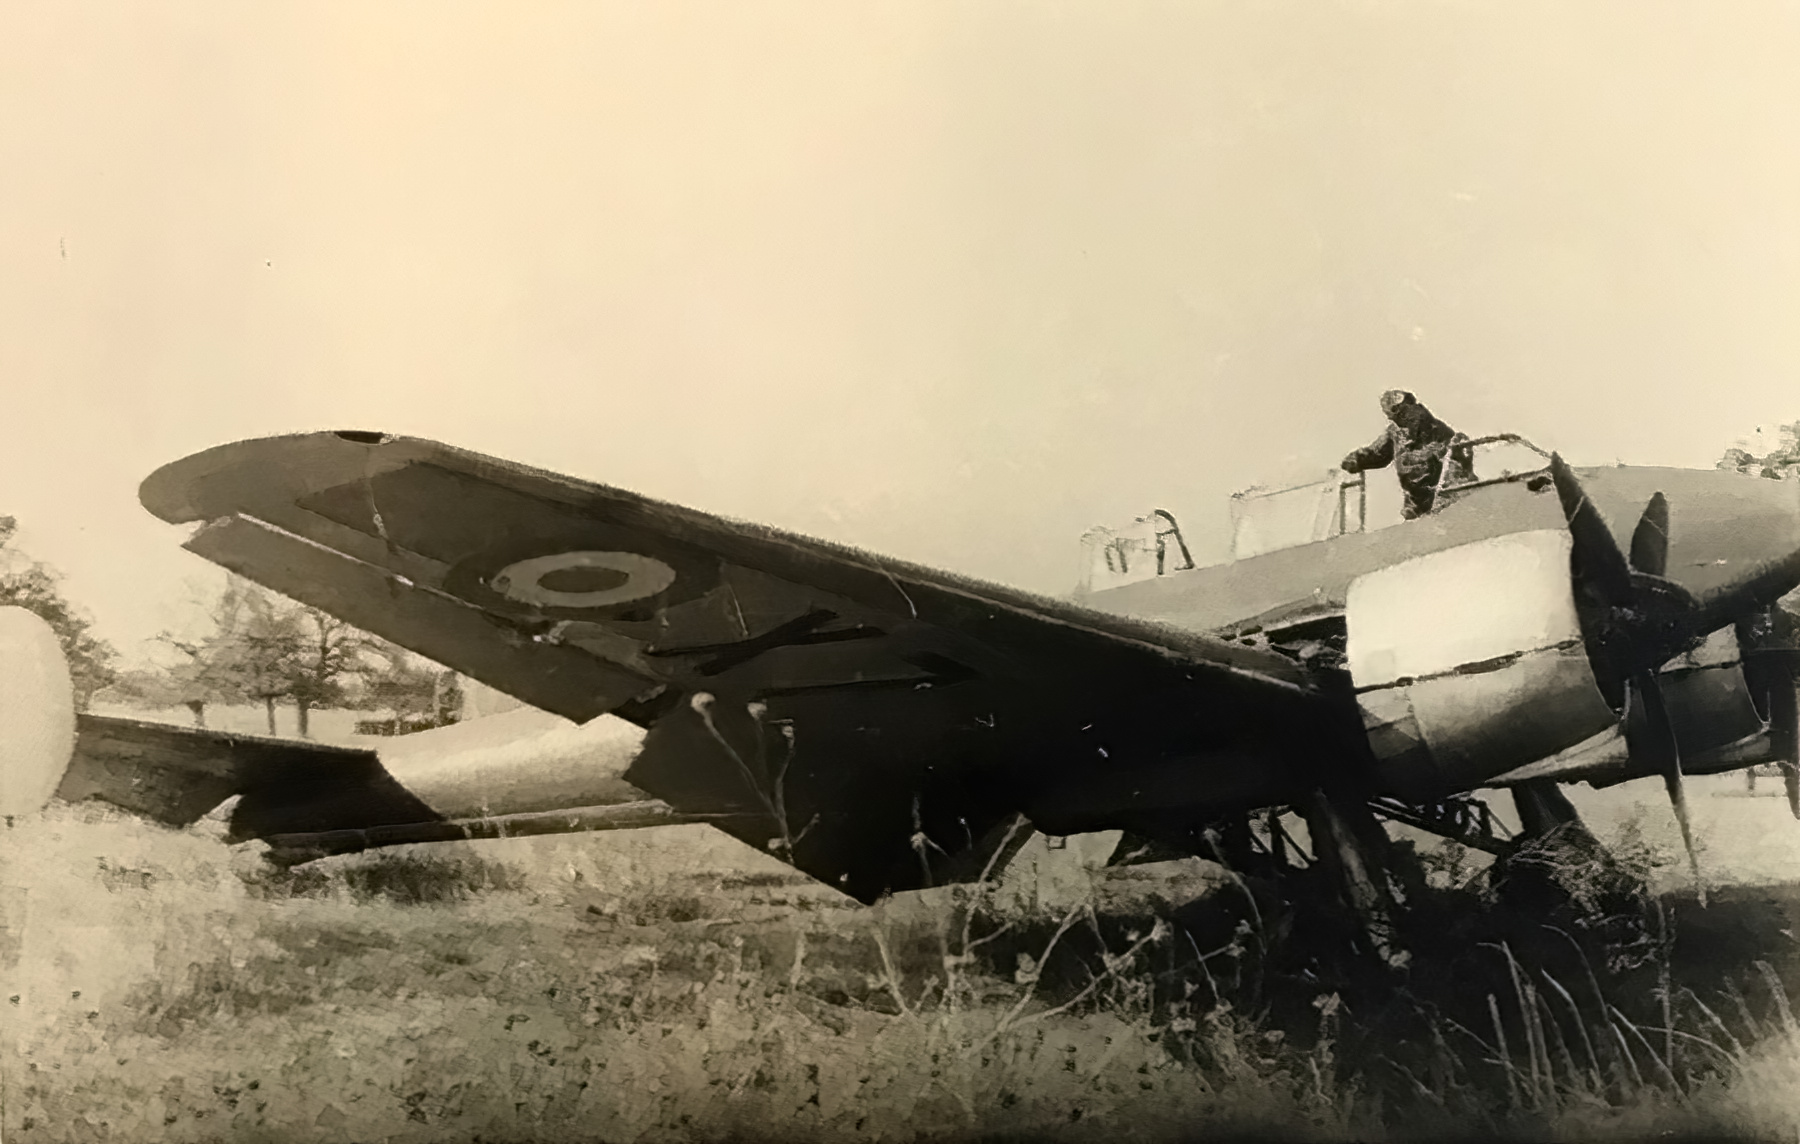 French Airforce Potez 630 sits abandoned after the fall of France June 1940 ebay 01